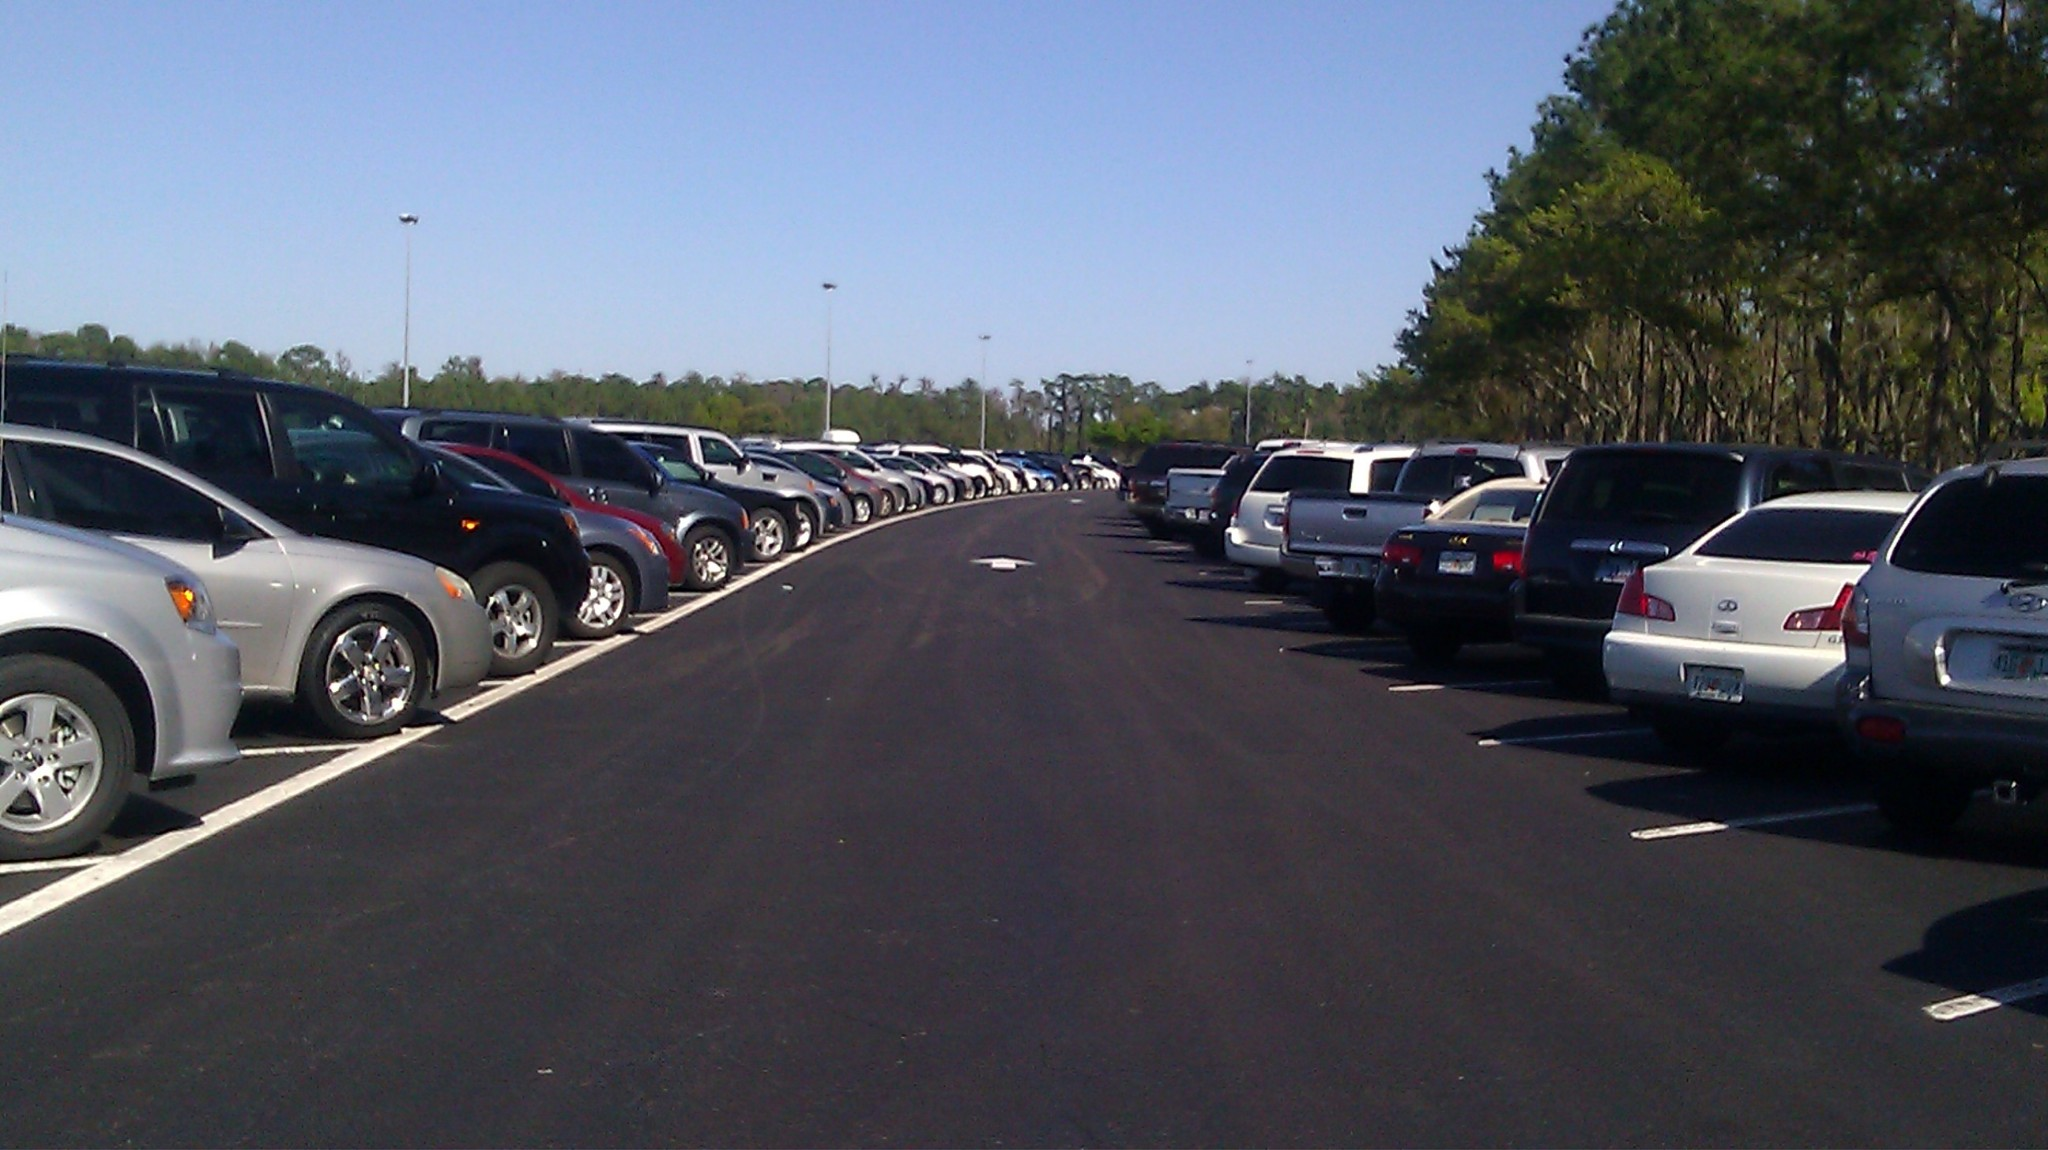 Walt Disney World Parking Rates Have Increased